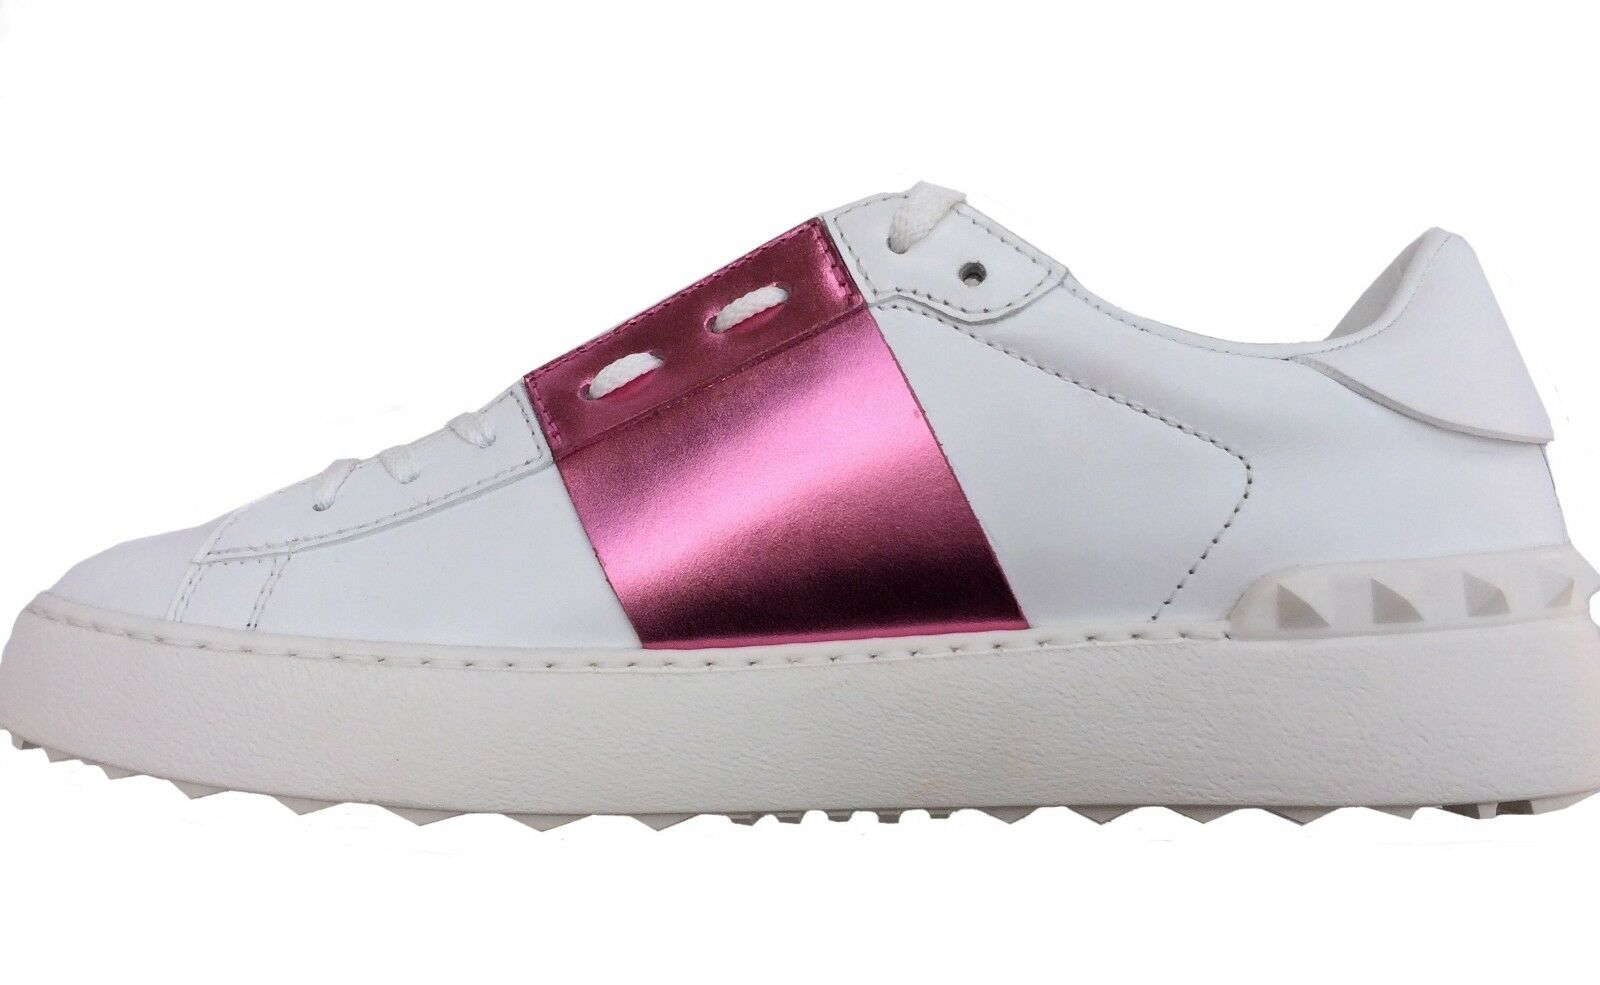 Valentino Garavani Rockstud Sneakers Trainers shoes Size 40   7 UK White